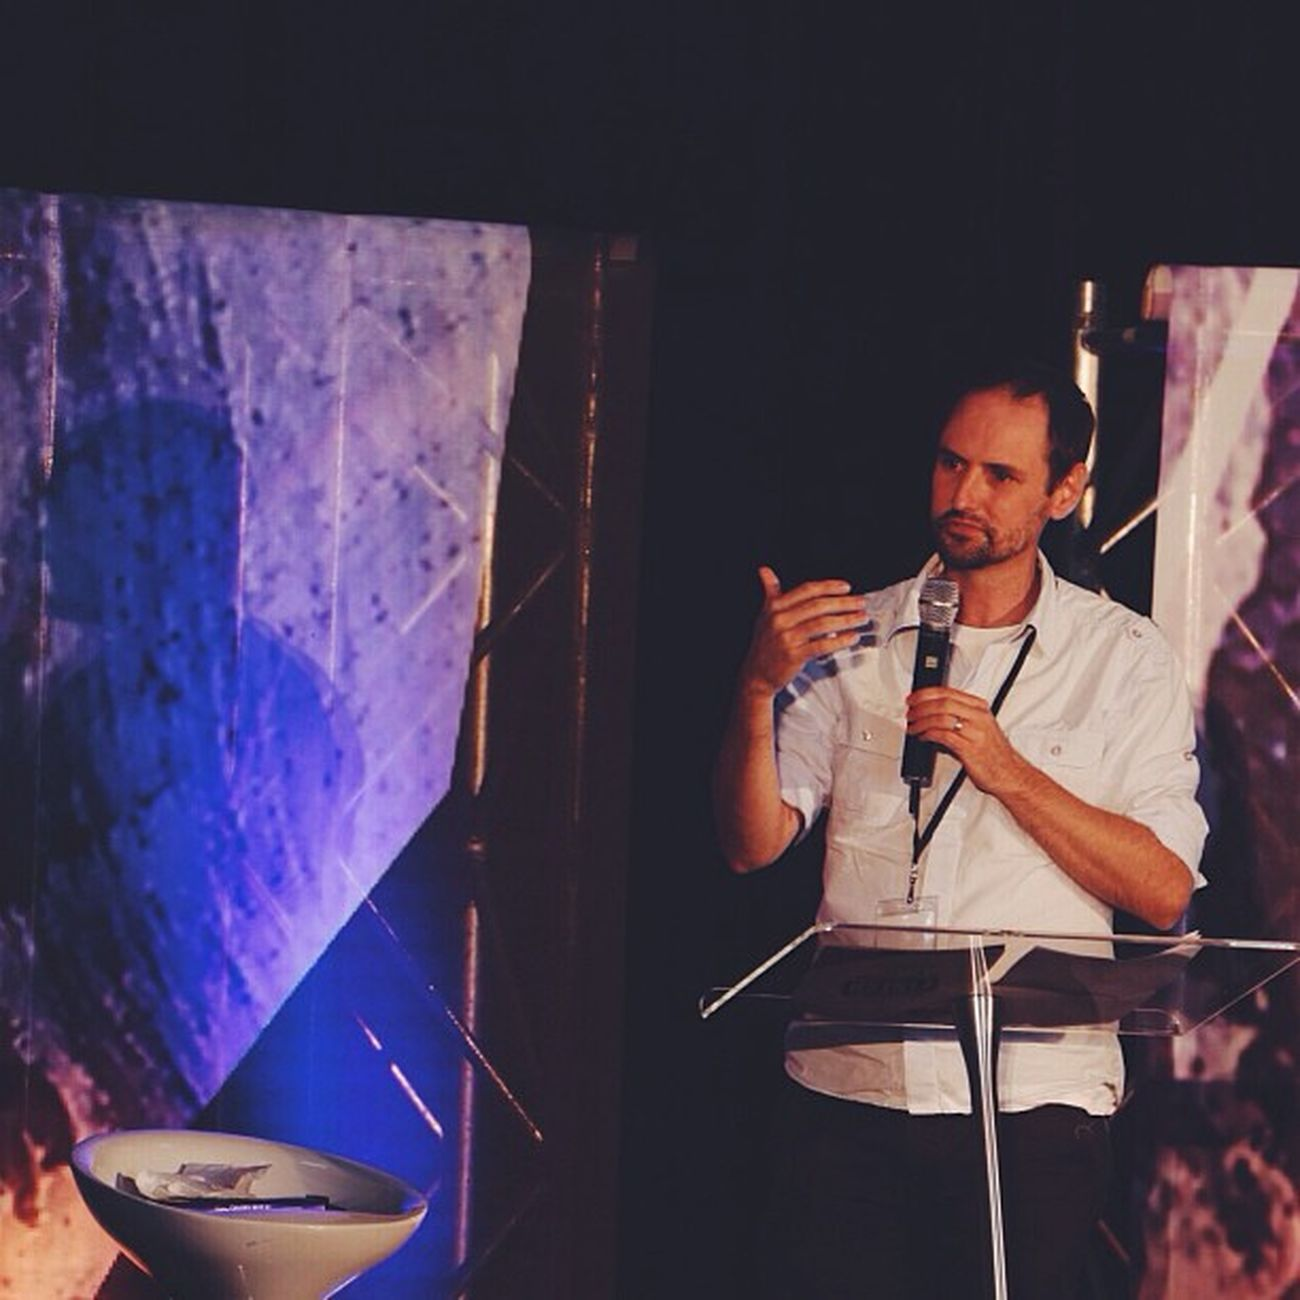 John Beckett of @micah_challenge speaking at Hillsongconf in Halvepovertyby2015 Vscocam